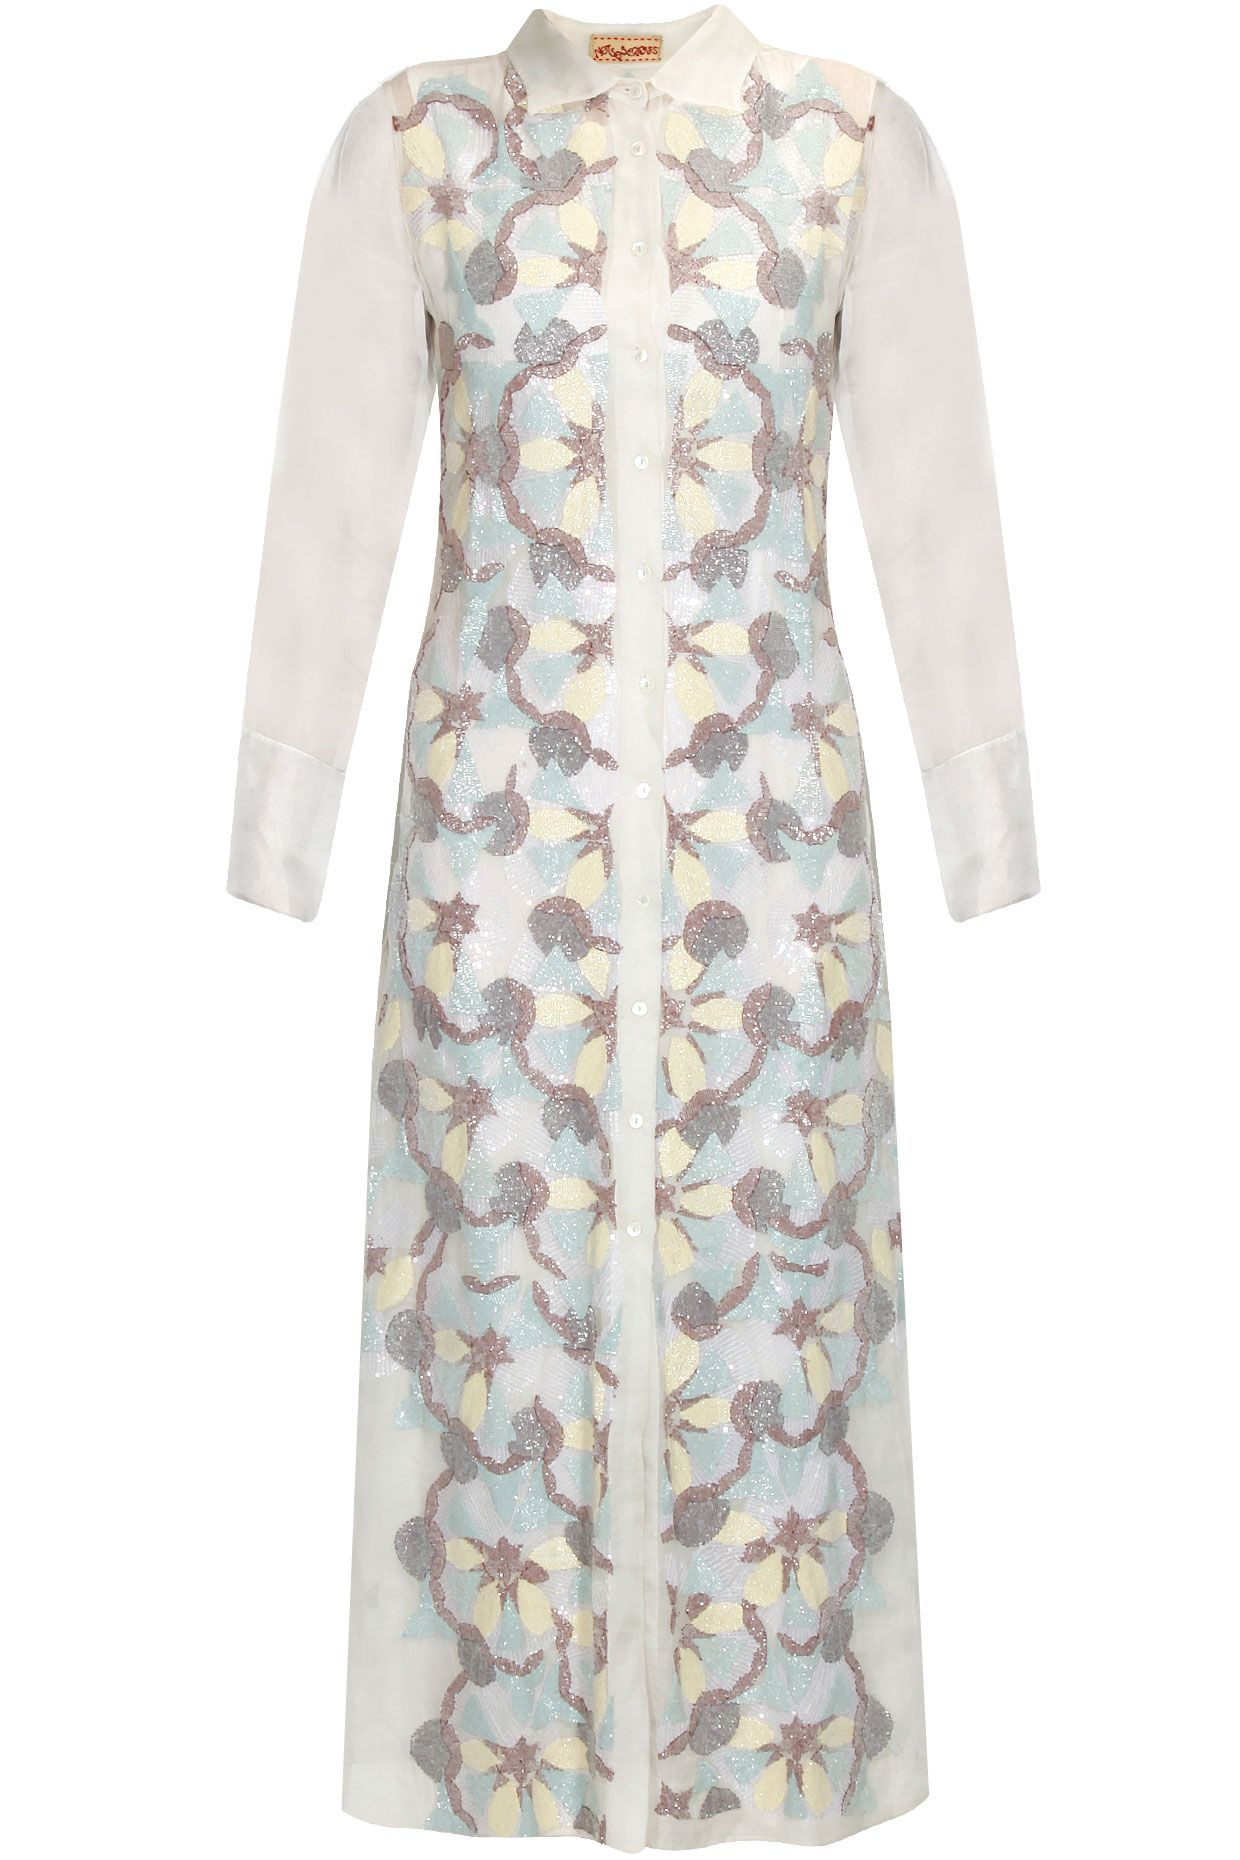 Off white bugal beads embroidered long shirt dress available only at